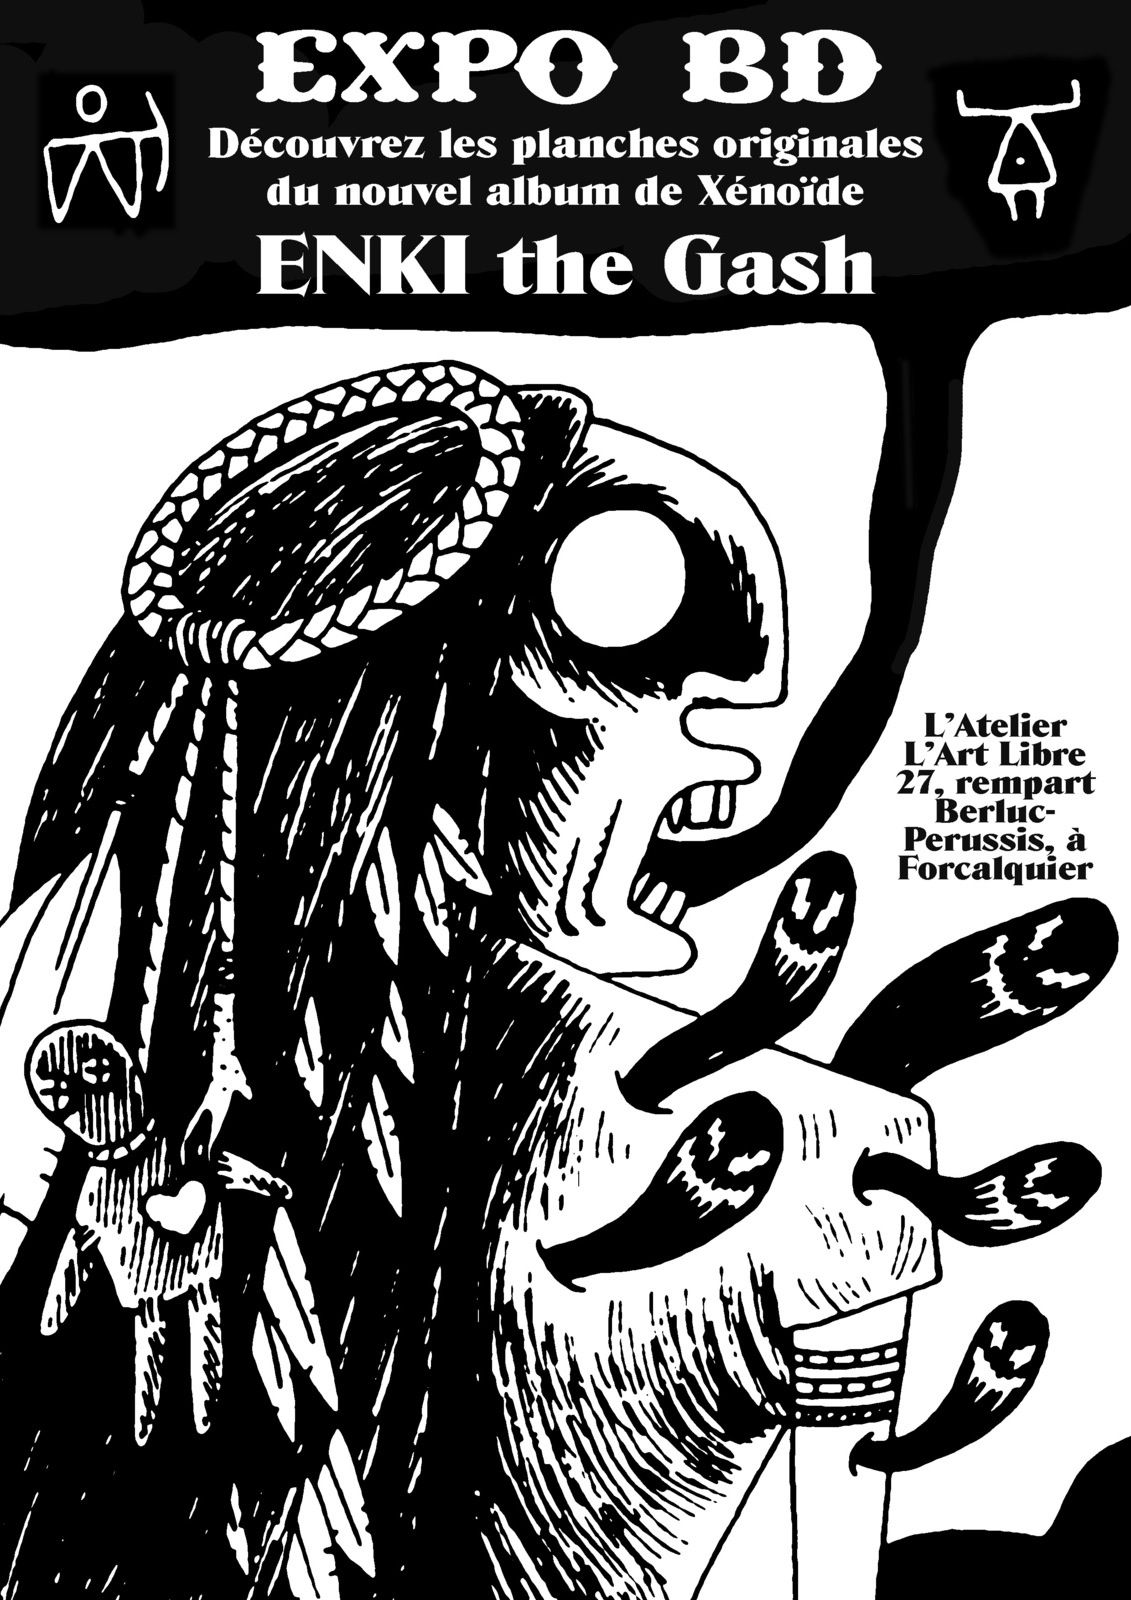 EXPO ENKI the Gash